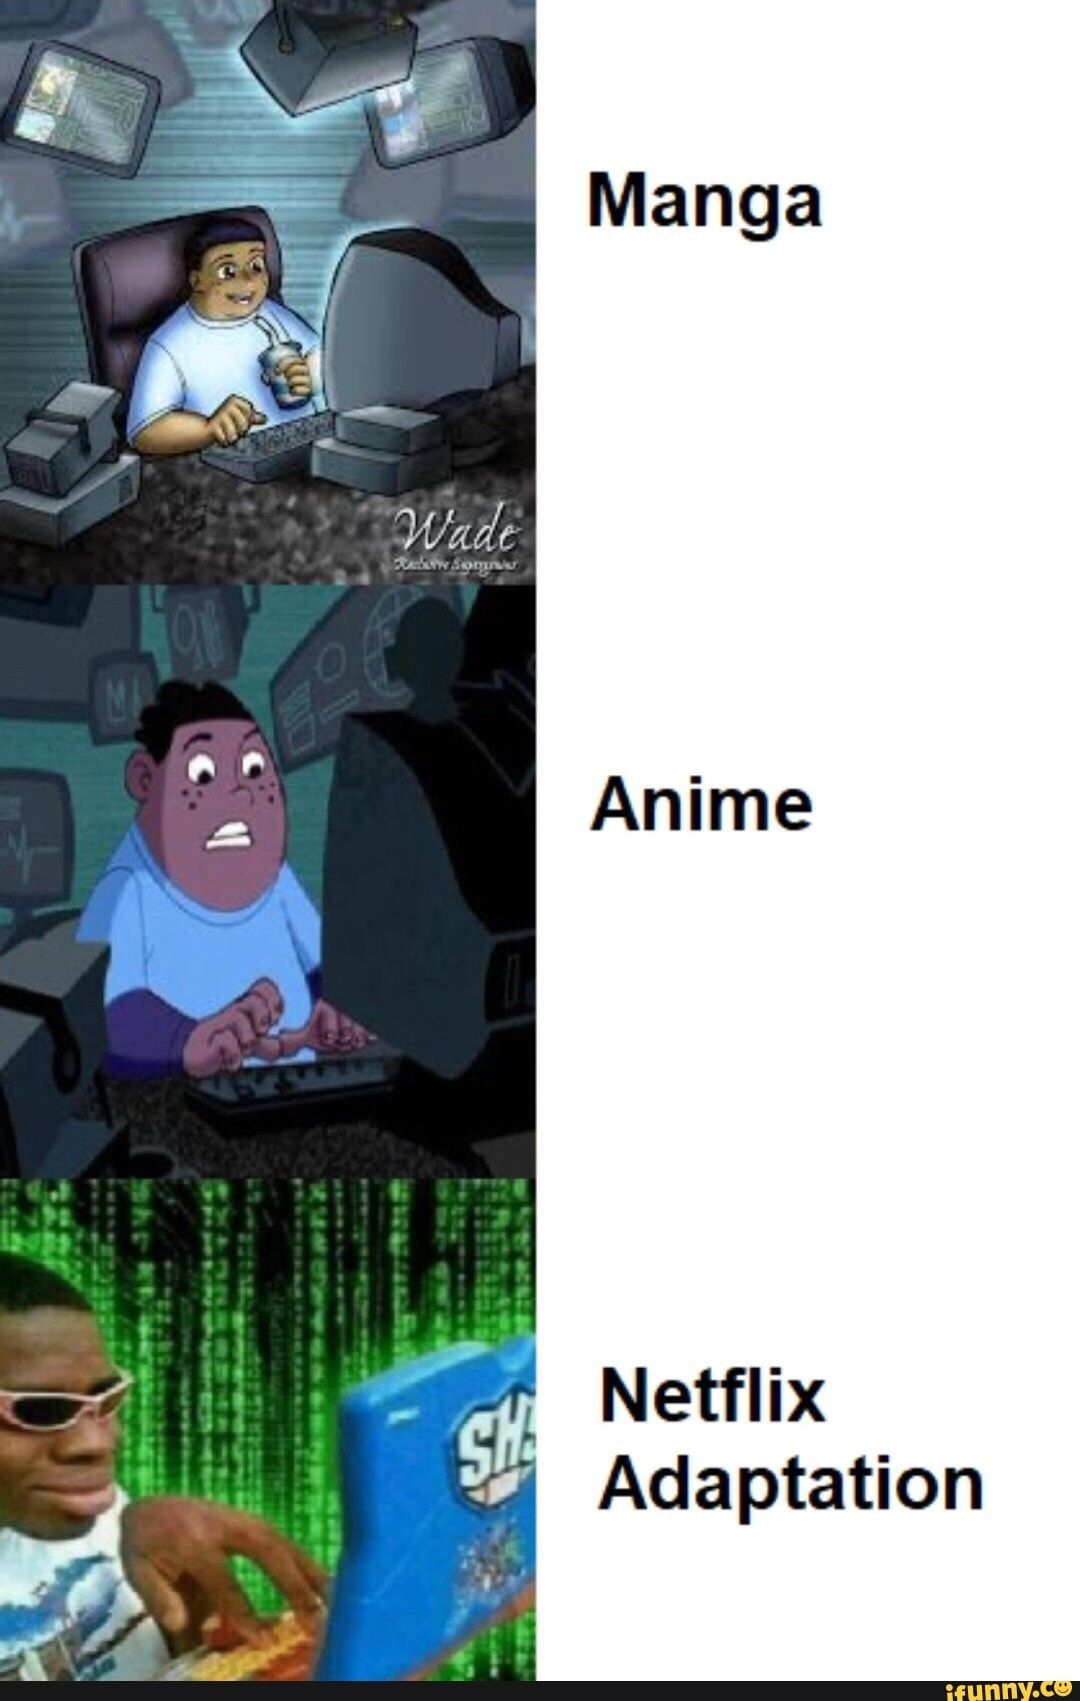 Picture Memes H6gm5mfc6 By Charlottekatakuri 212 Comments Ifunny Anime Memes Funny Funny Memes Really Funny Memes